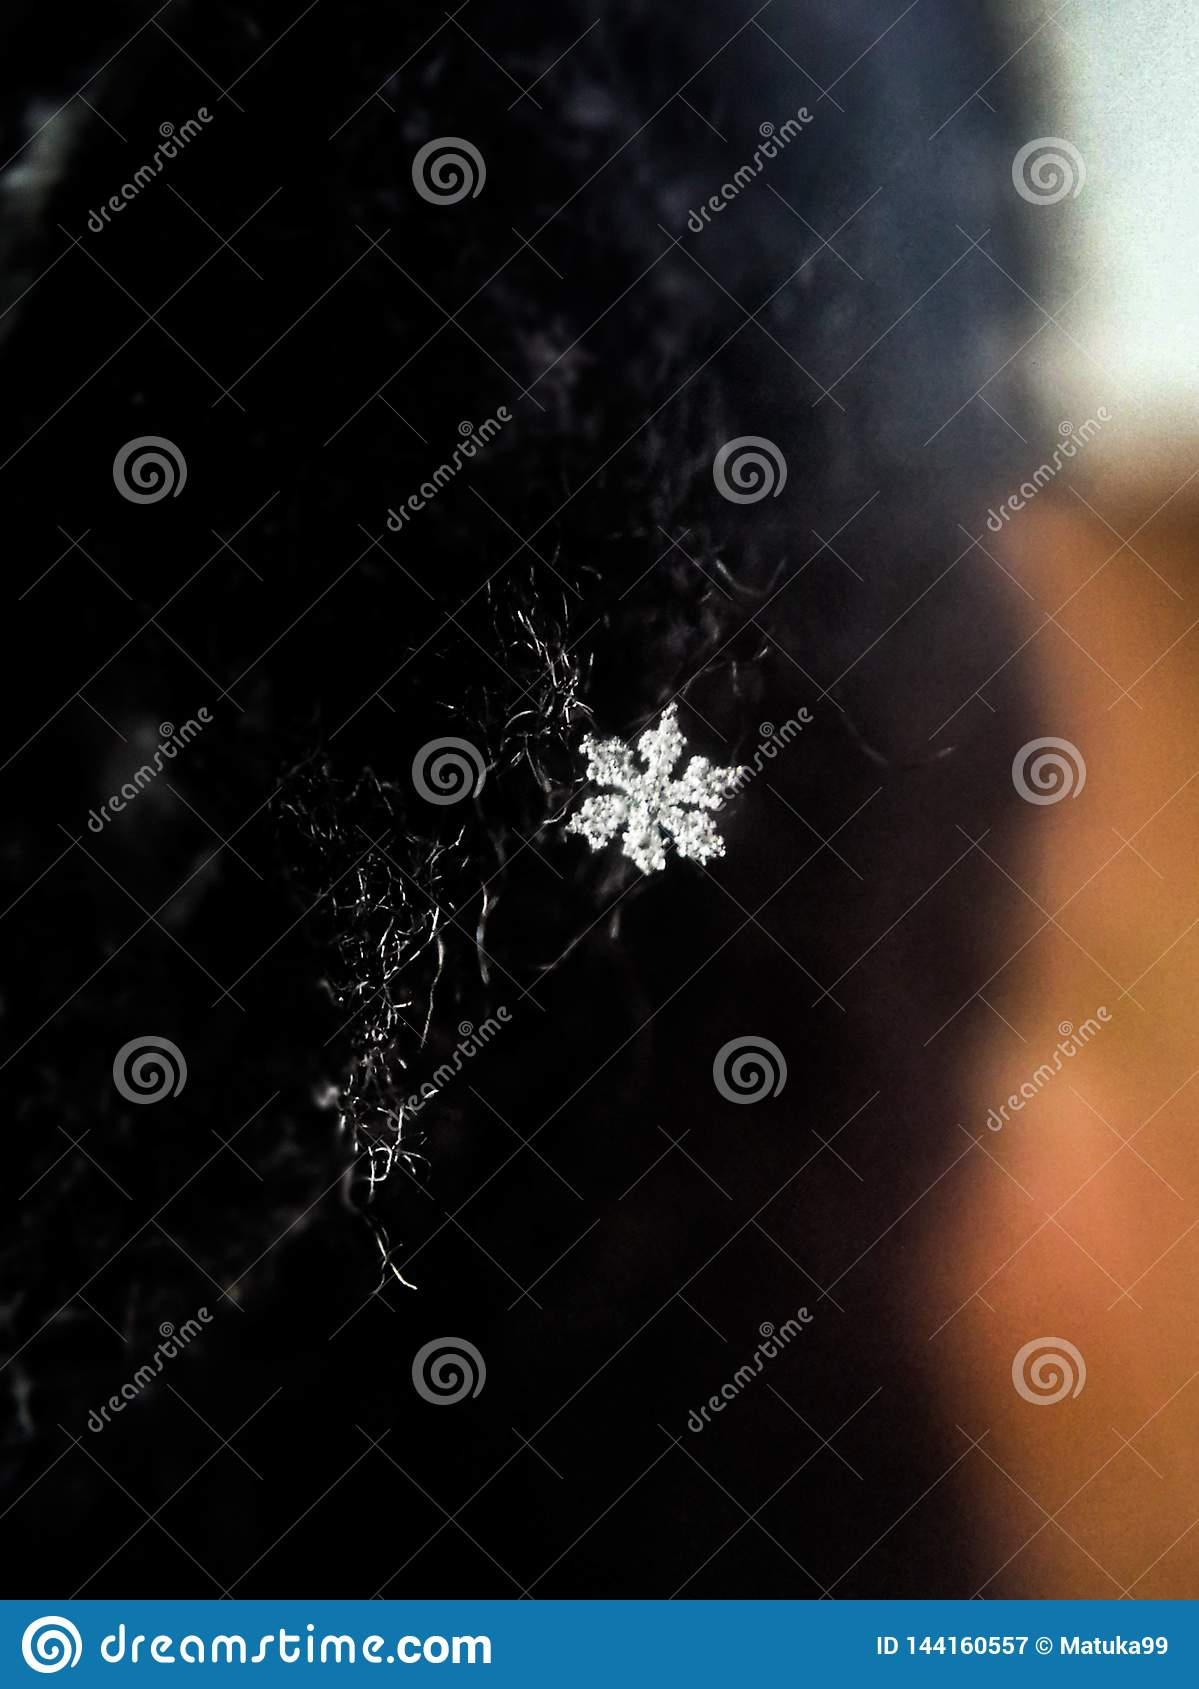 Macro lens image with a snowflake from close